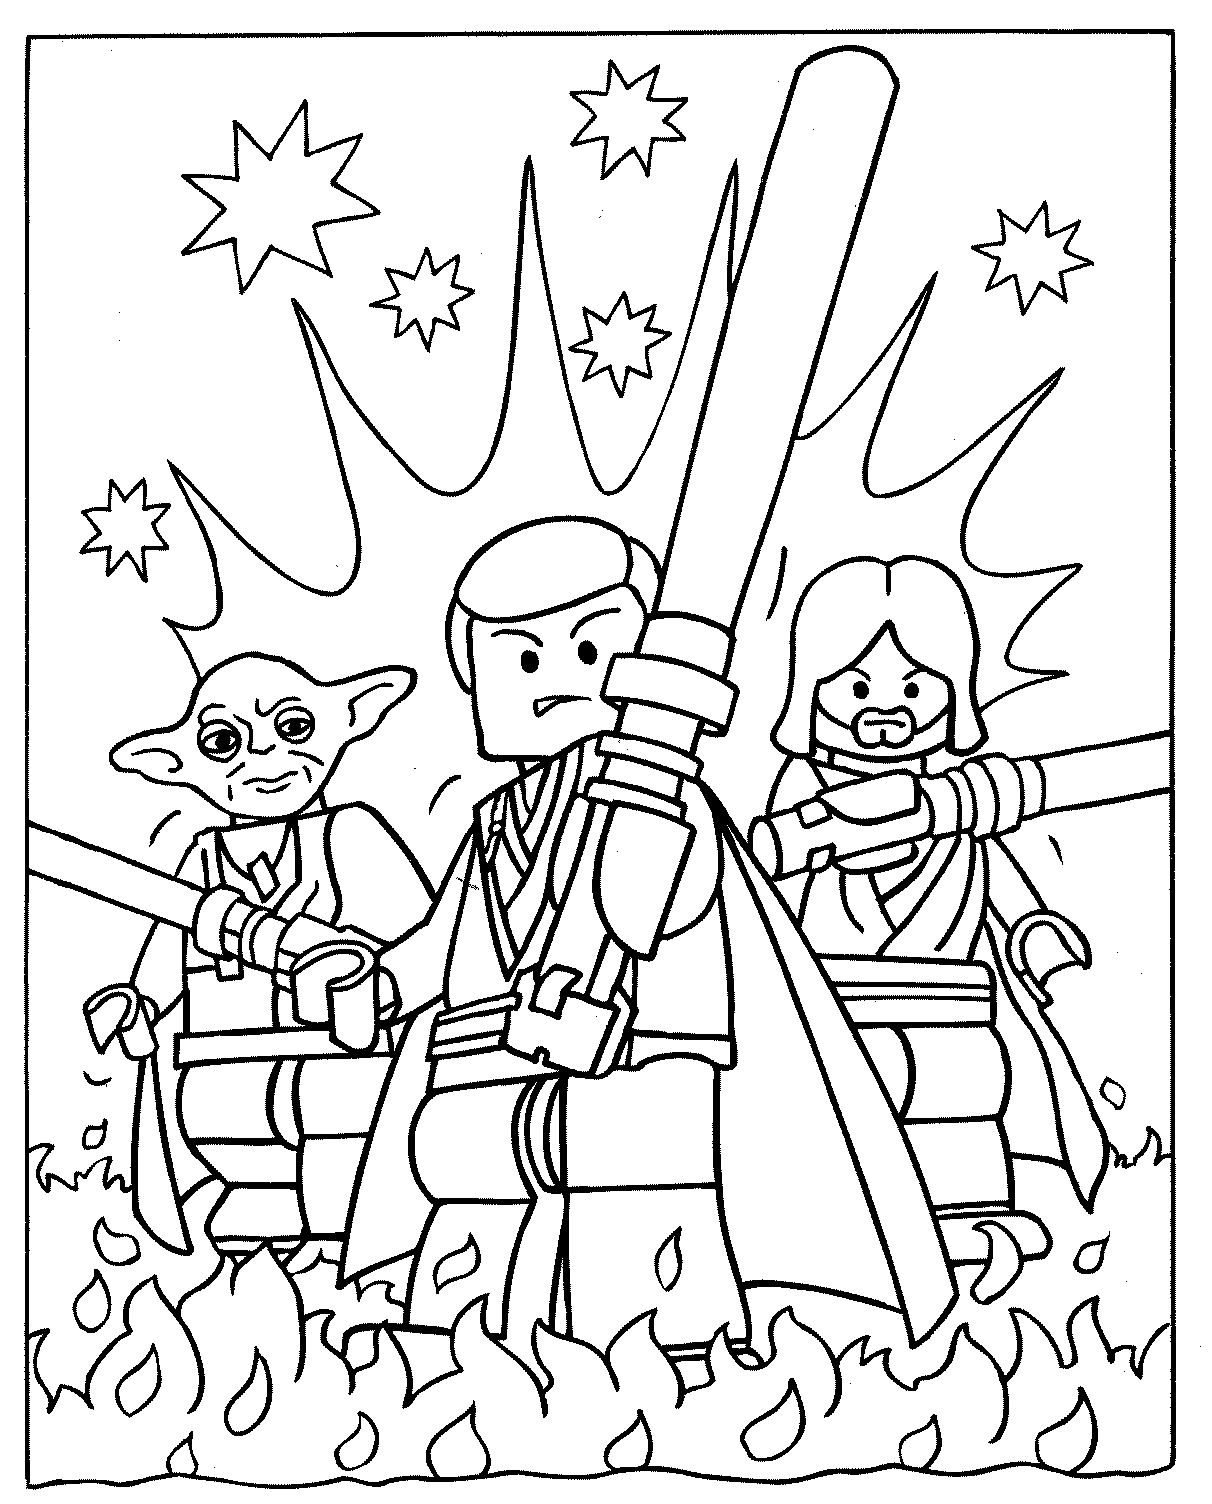 Funny Legos coloring page for children